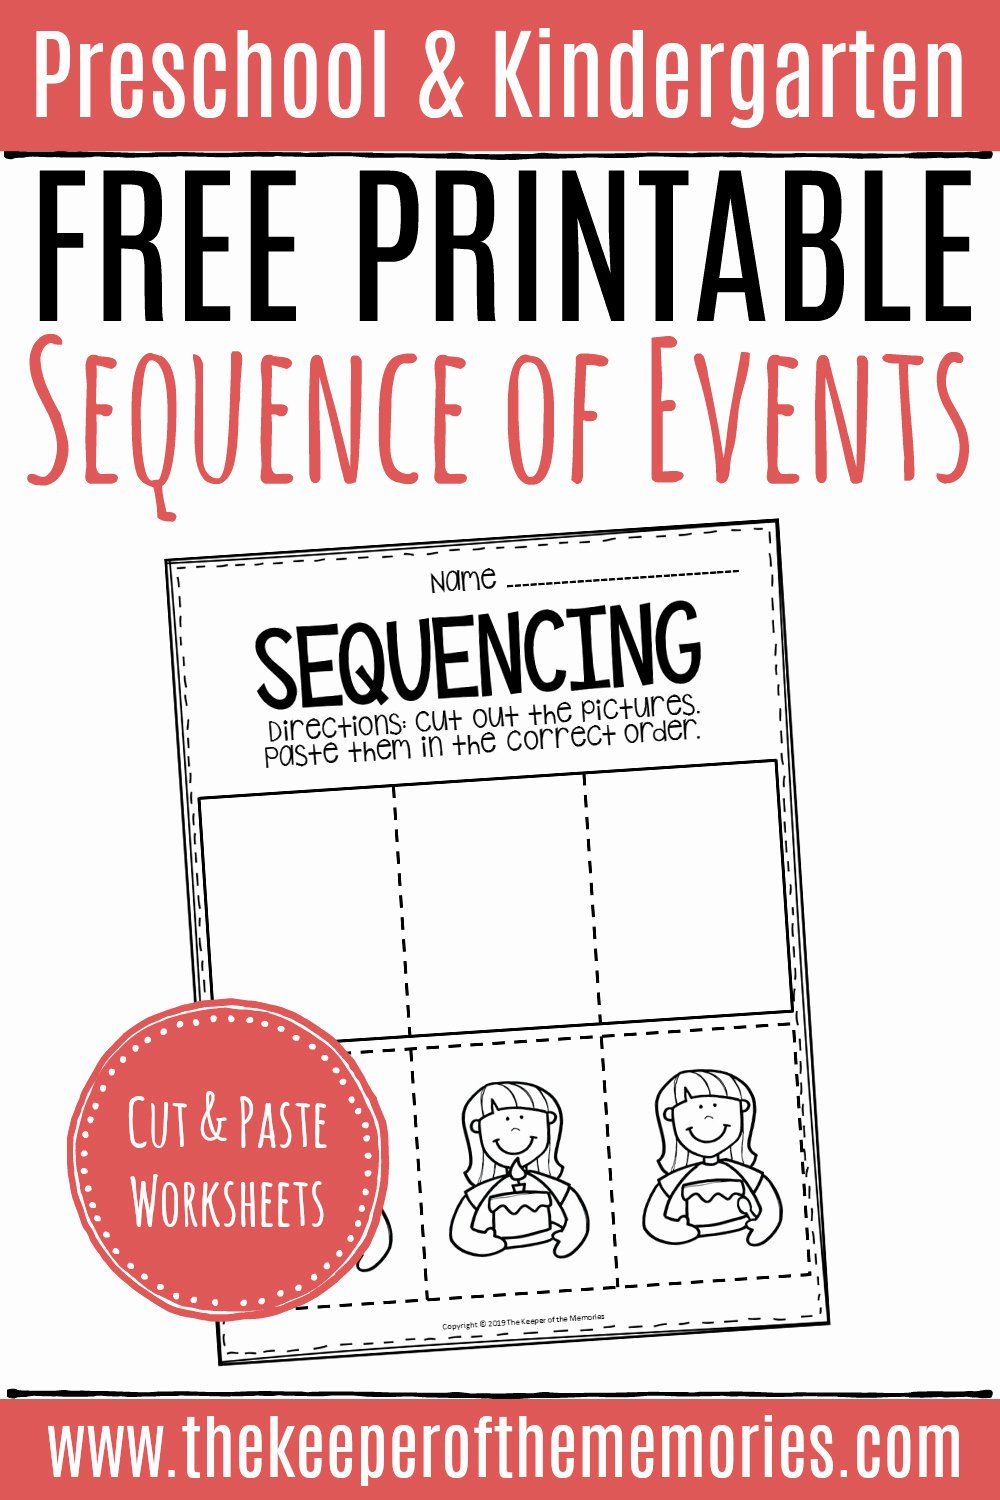 Sequencing events Worksheets for Preschoolers Best Of Free Printable Sequence Of events Worksheets